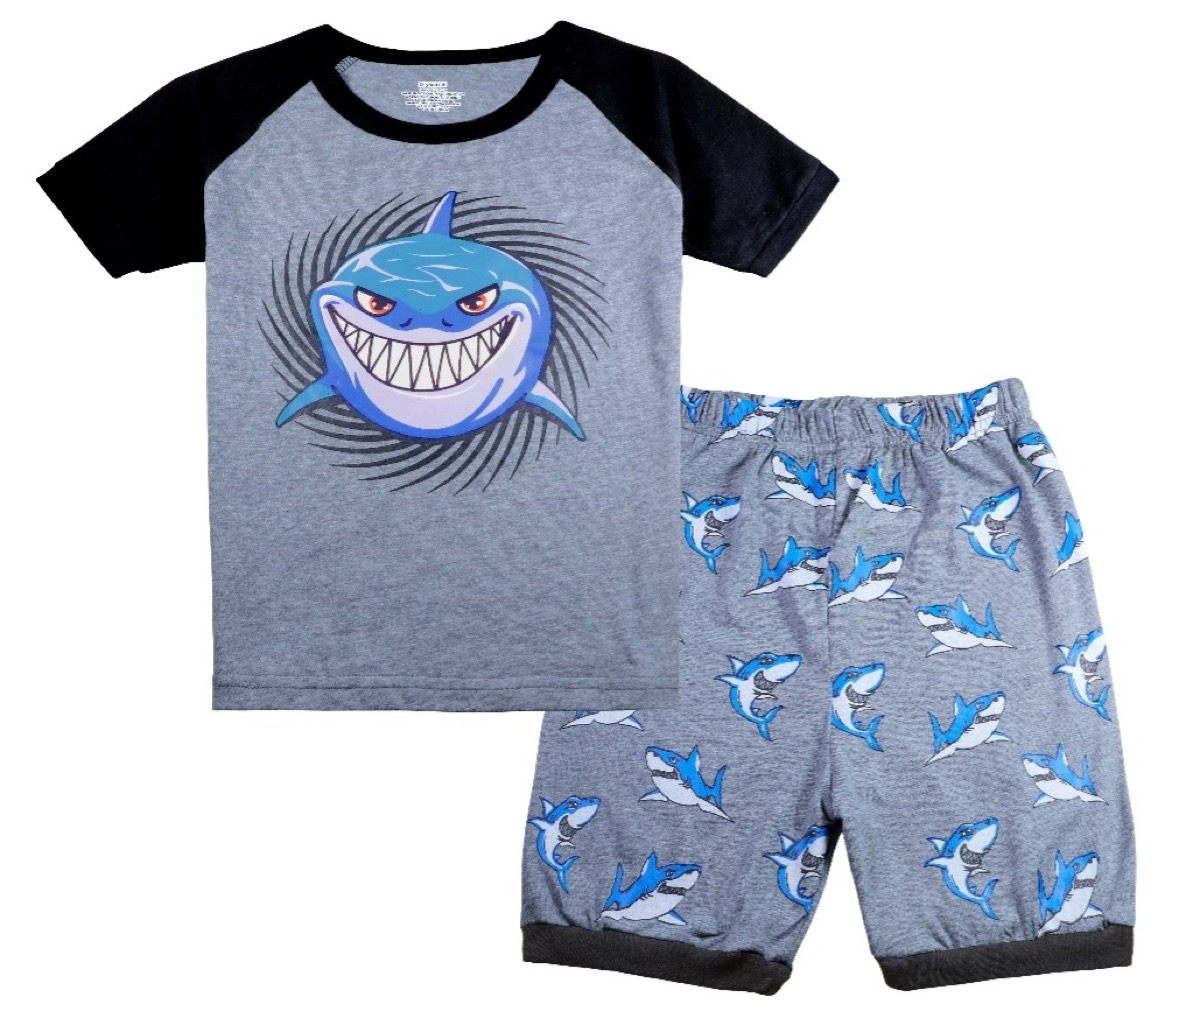 two piece set of gray shark pajamas with a t-shirt top and shorts bottom